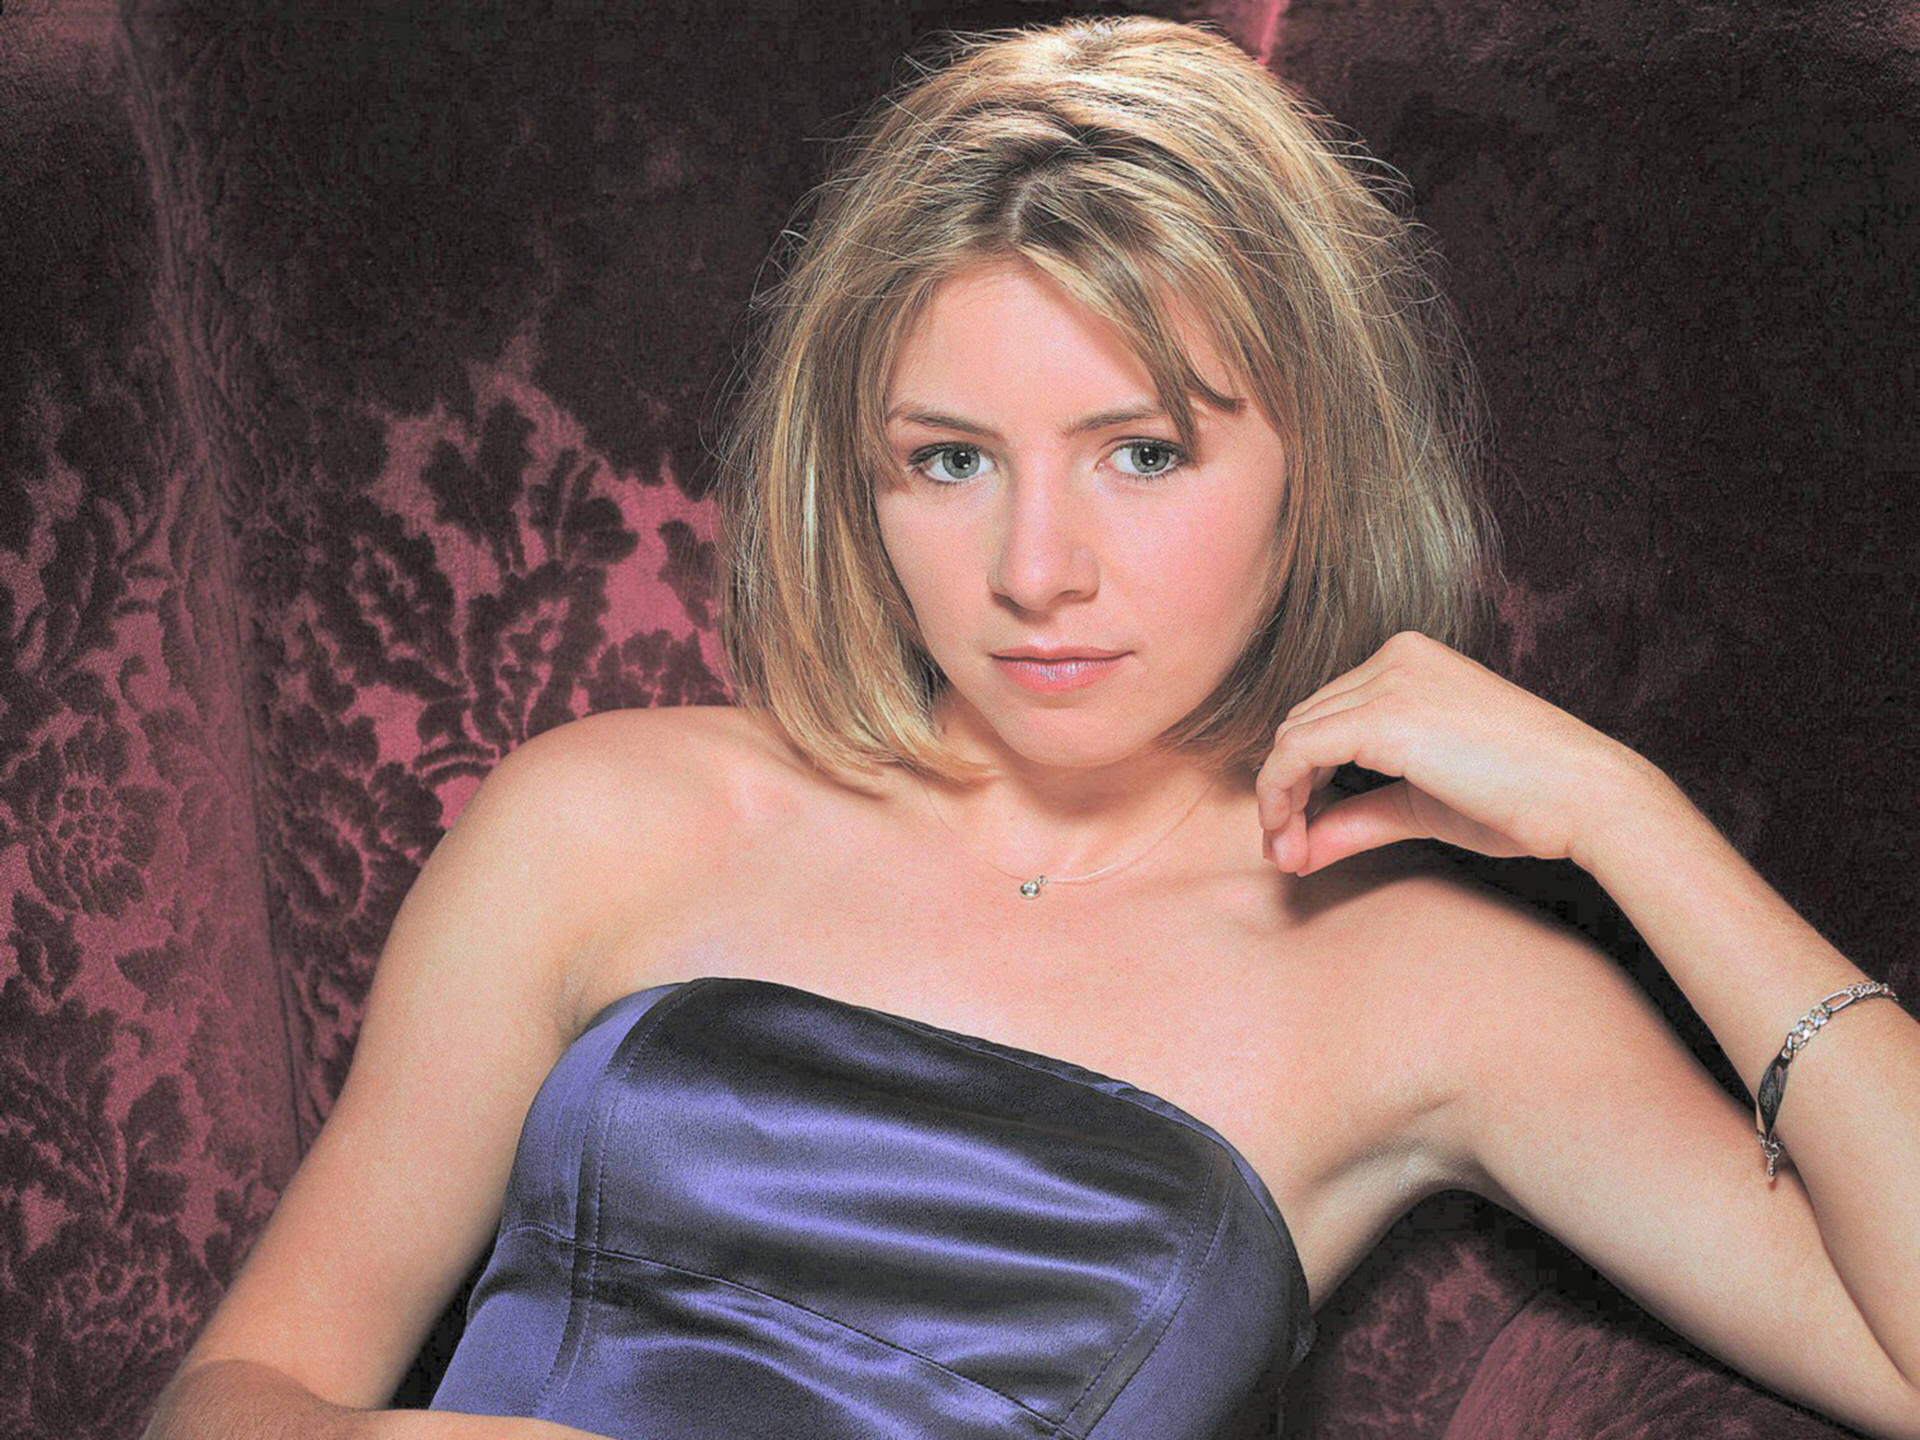 Beverley mitchell picture image 2 contact us privacy tos actors